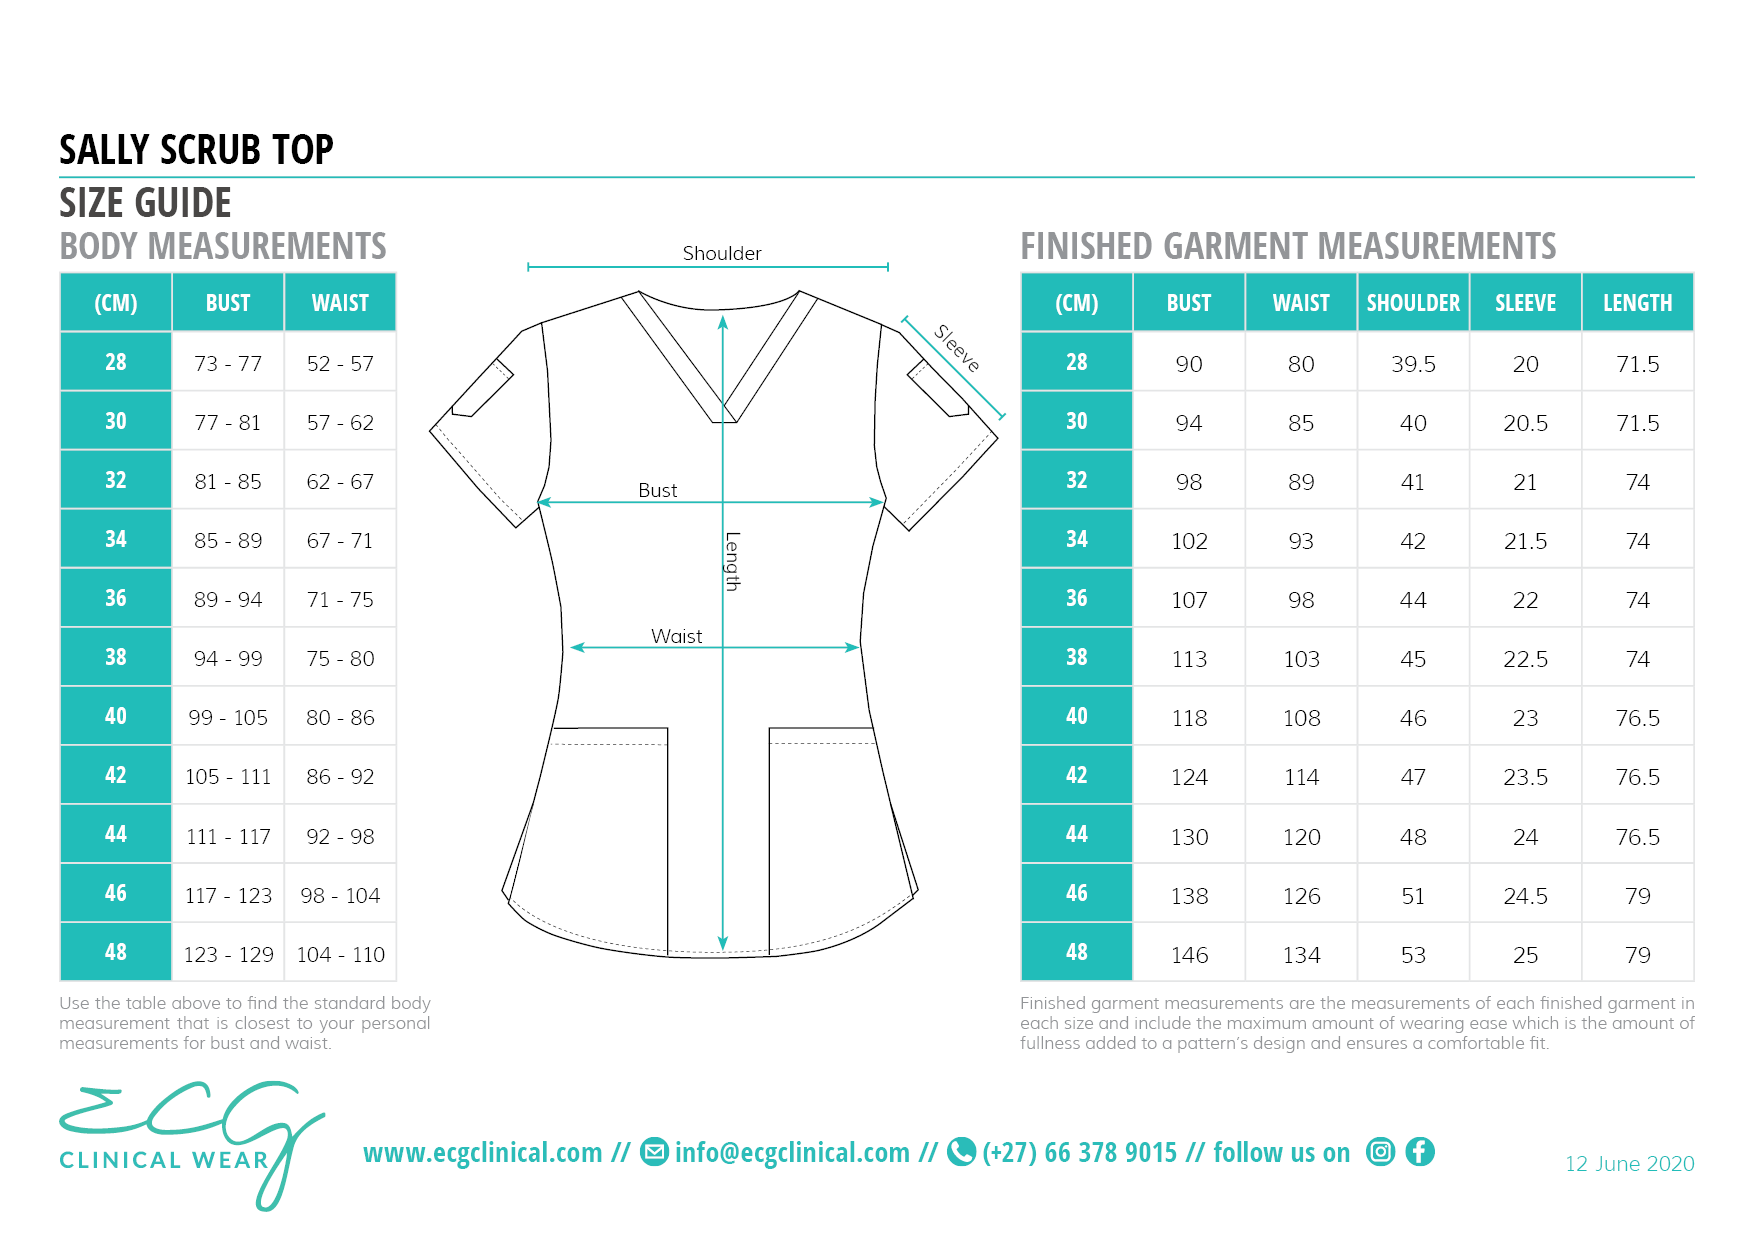 ECG Clinical Wear Sally Scrub Top Size and Fit Guide